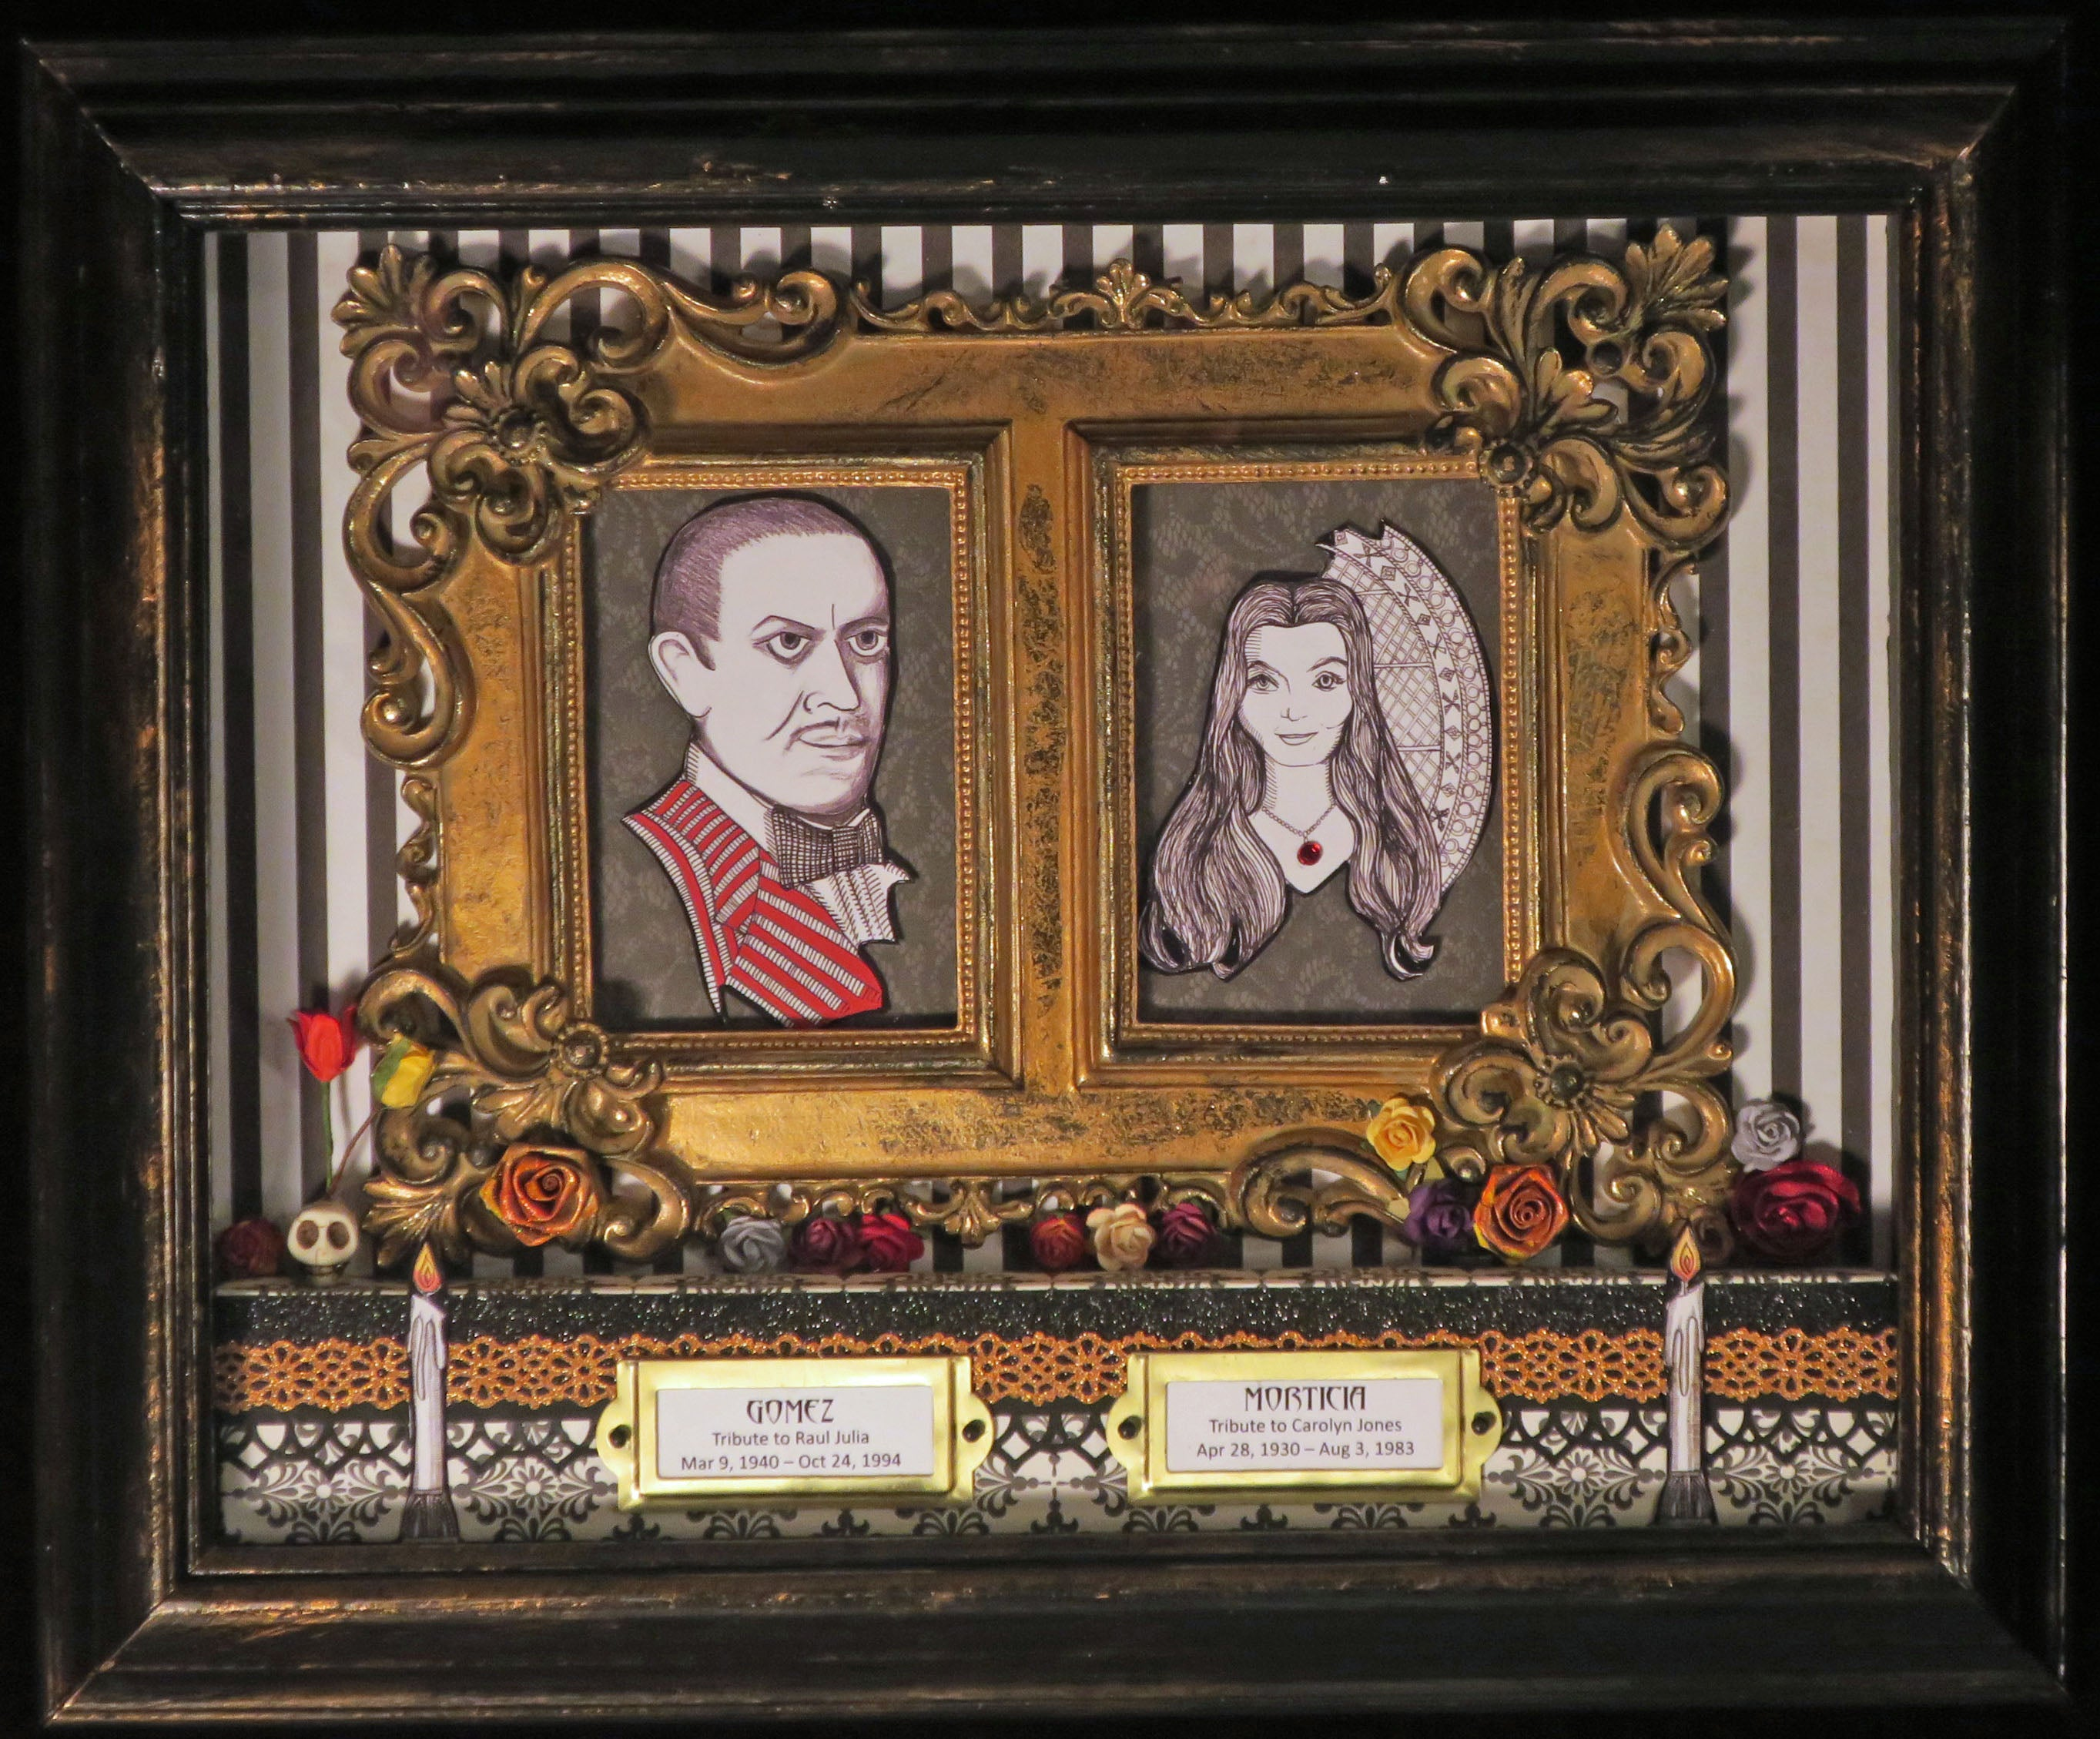 Gomez and Morticia Addams Dia de los Muertos inspired shadowbox